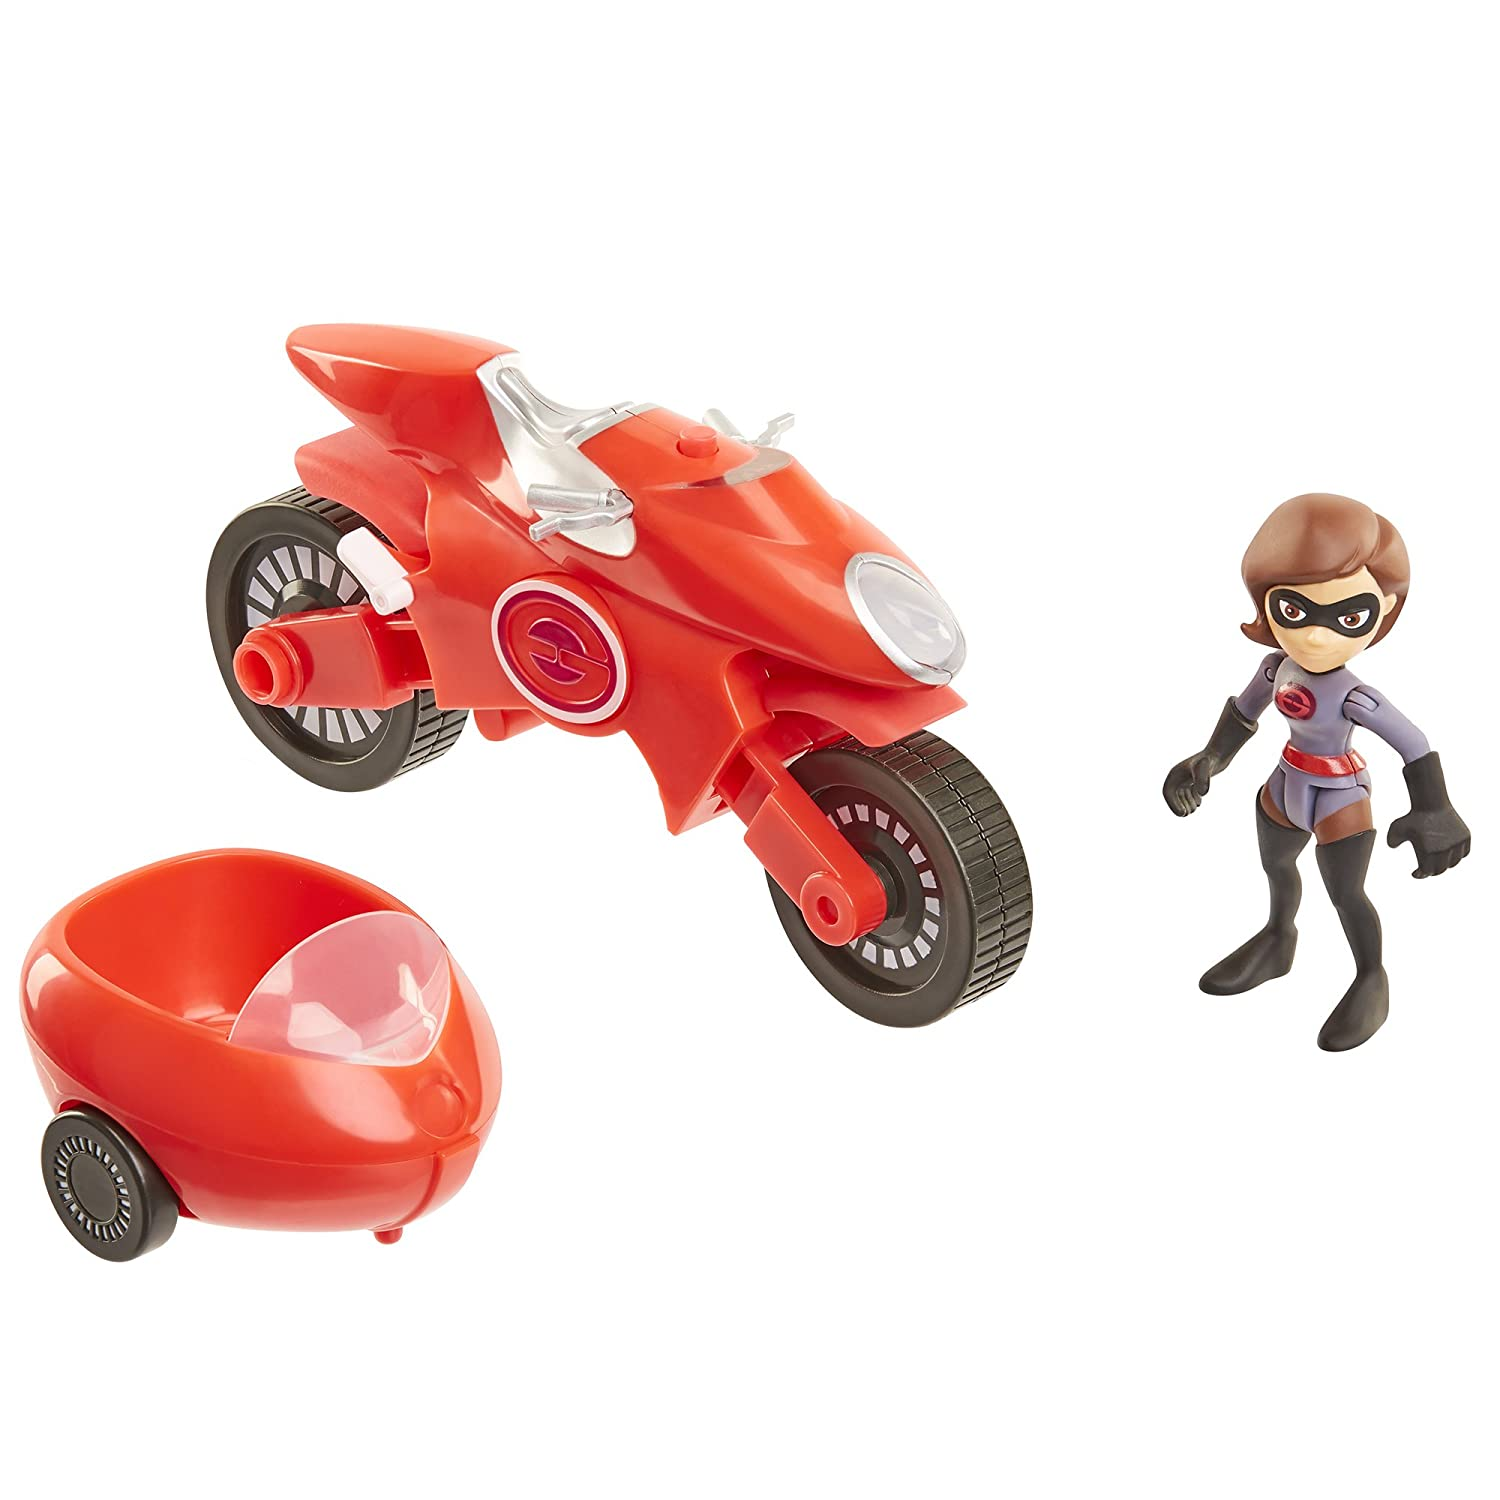 The Incredibles 2 Elasticycle.